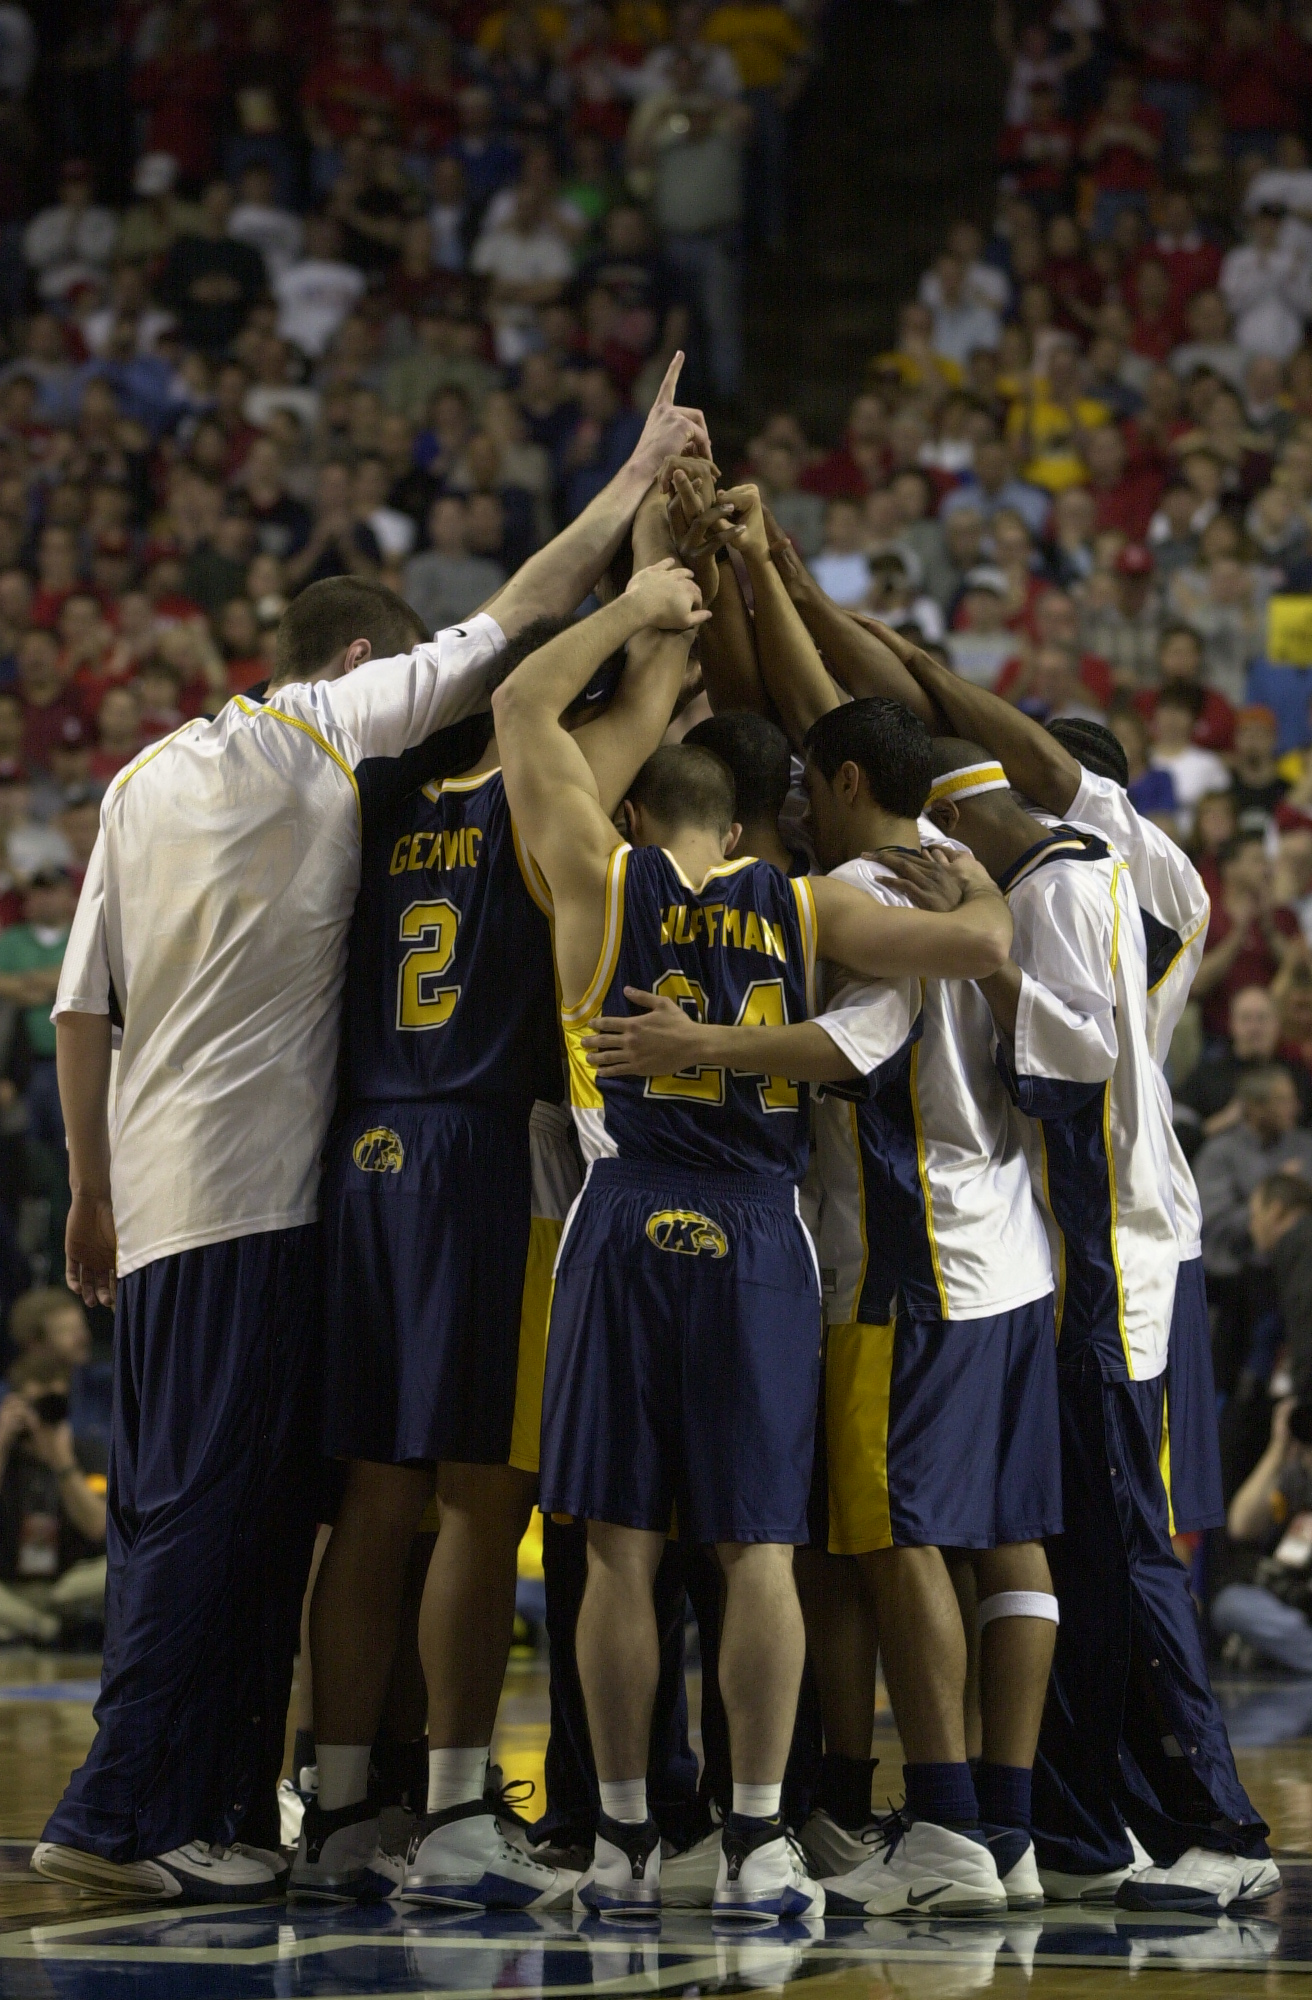 The Golden Flashes huddle prior to their March 23, 2002 Elite Eight game against Indiana at Rupp Arena in Lexington, Kentucky. Photos courtesy Kent State Athletics.